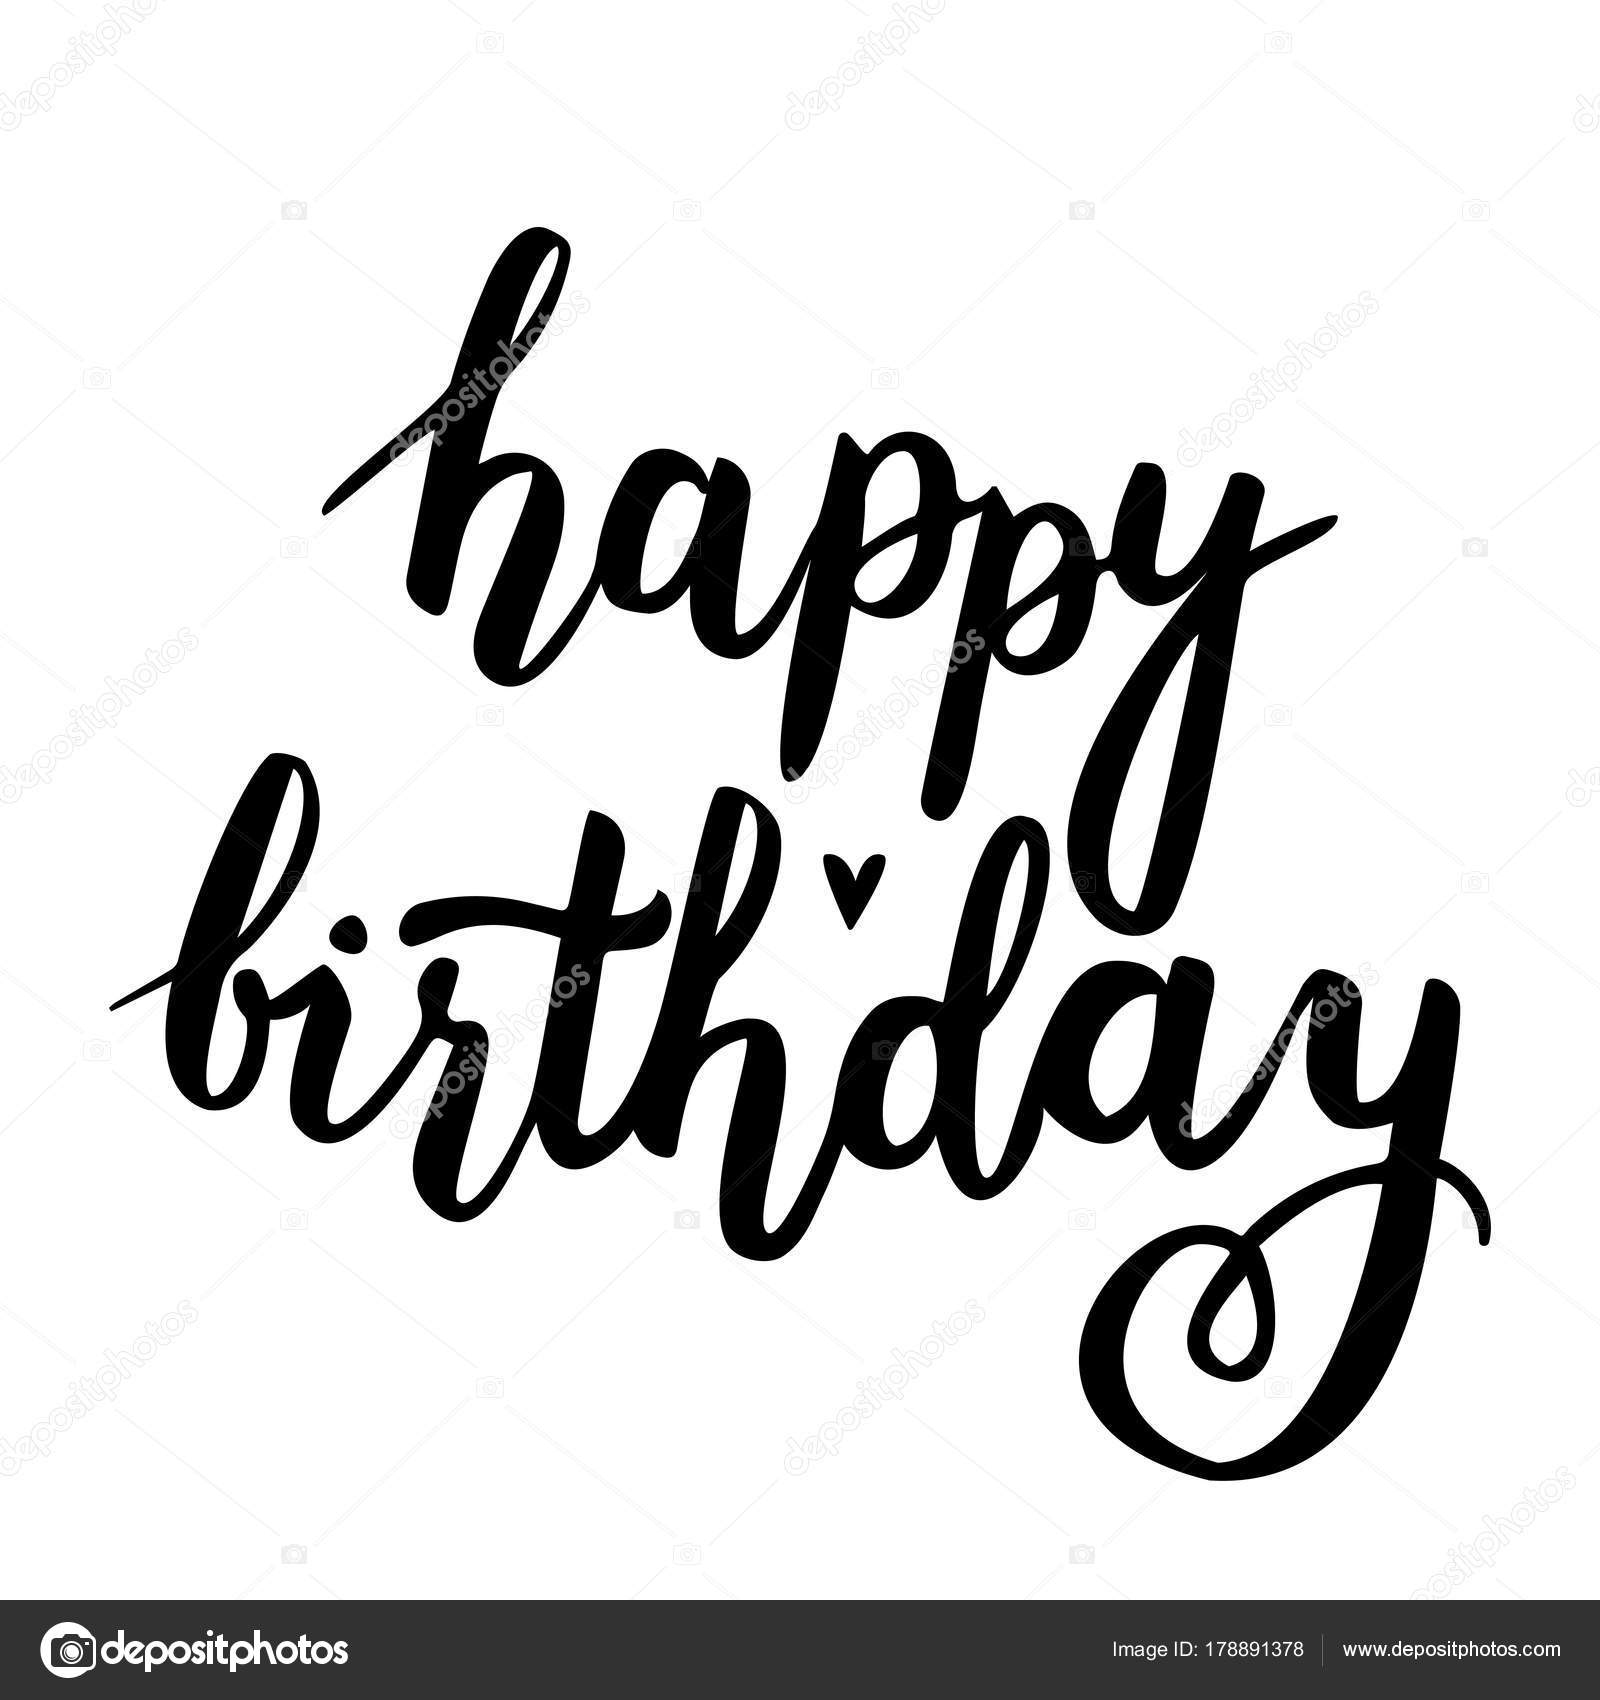 happy birthday vector card handwritten illustration heart stock rh depositphotos com happy birthday vector free download happy birthday vector background